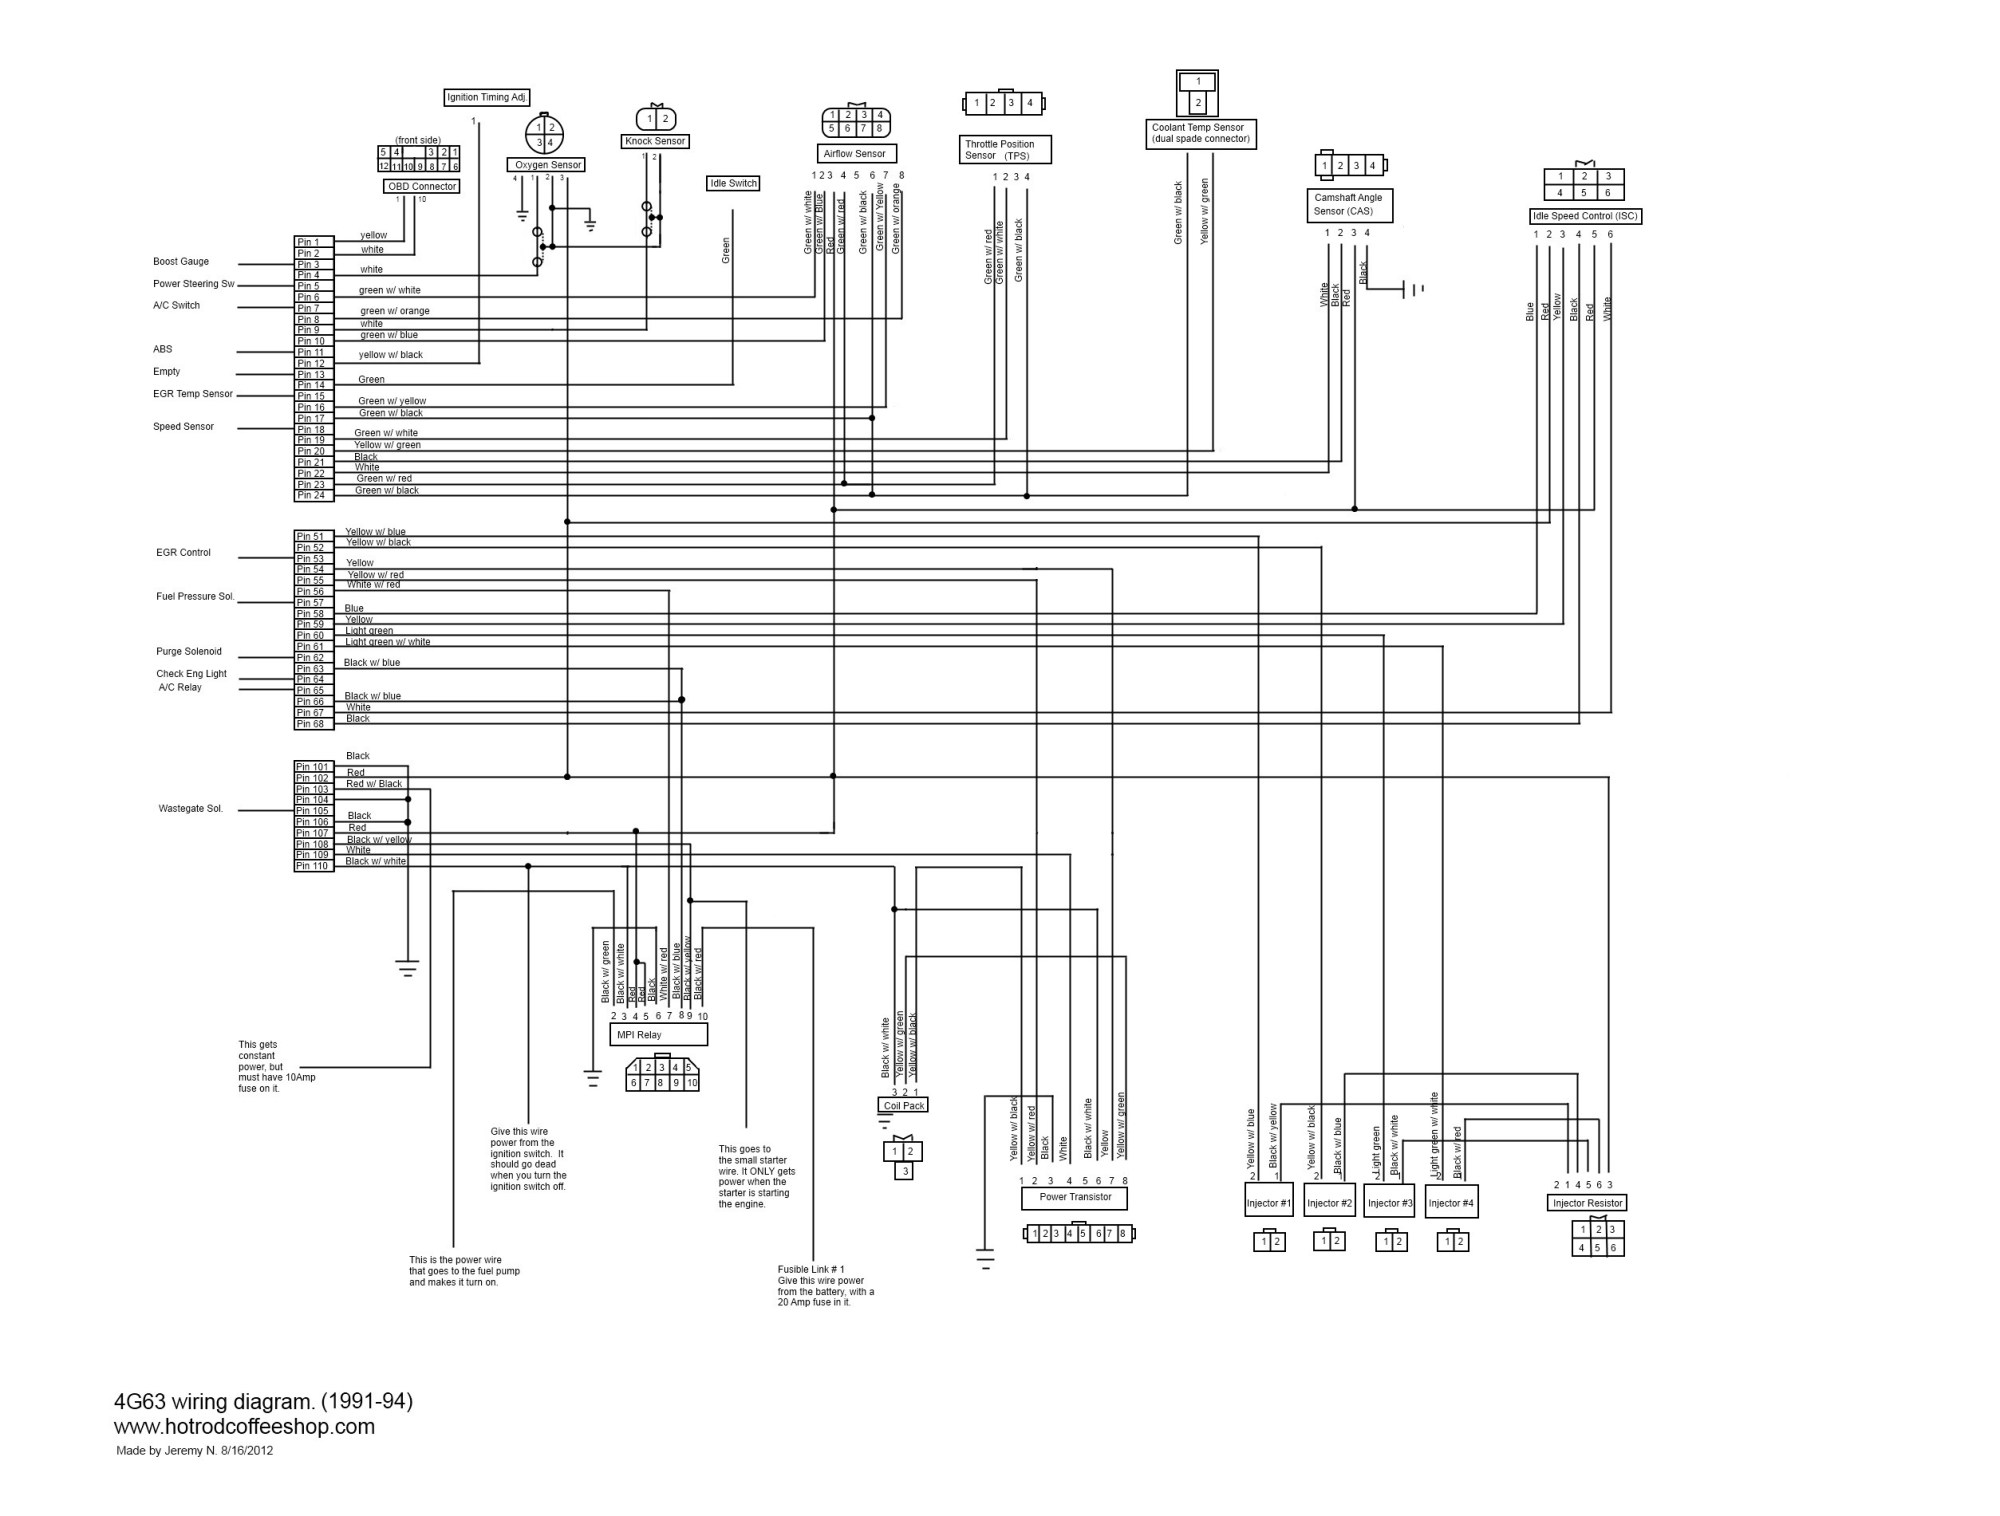 hight resolution of 1999 mitsubishi galant engine diagram wiring diagram used 1999 mitsubishi eclipse engine diagram wiring schematic